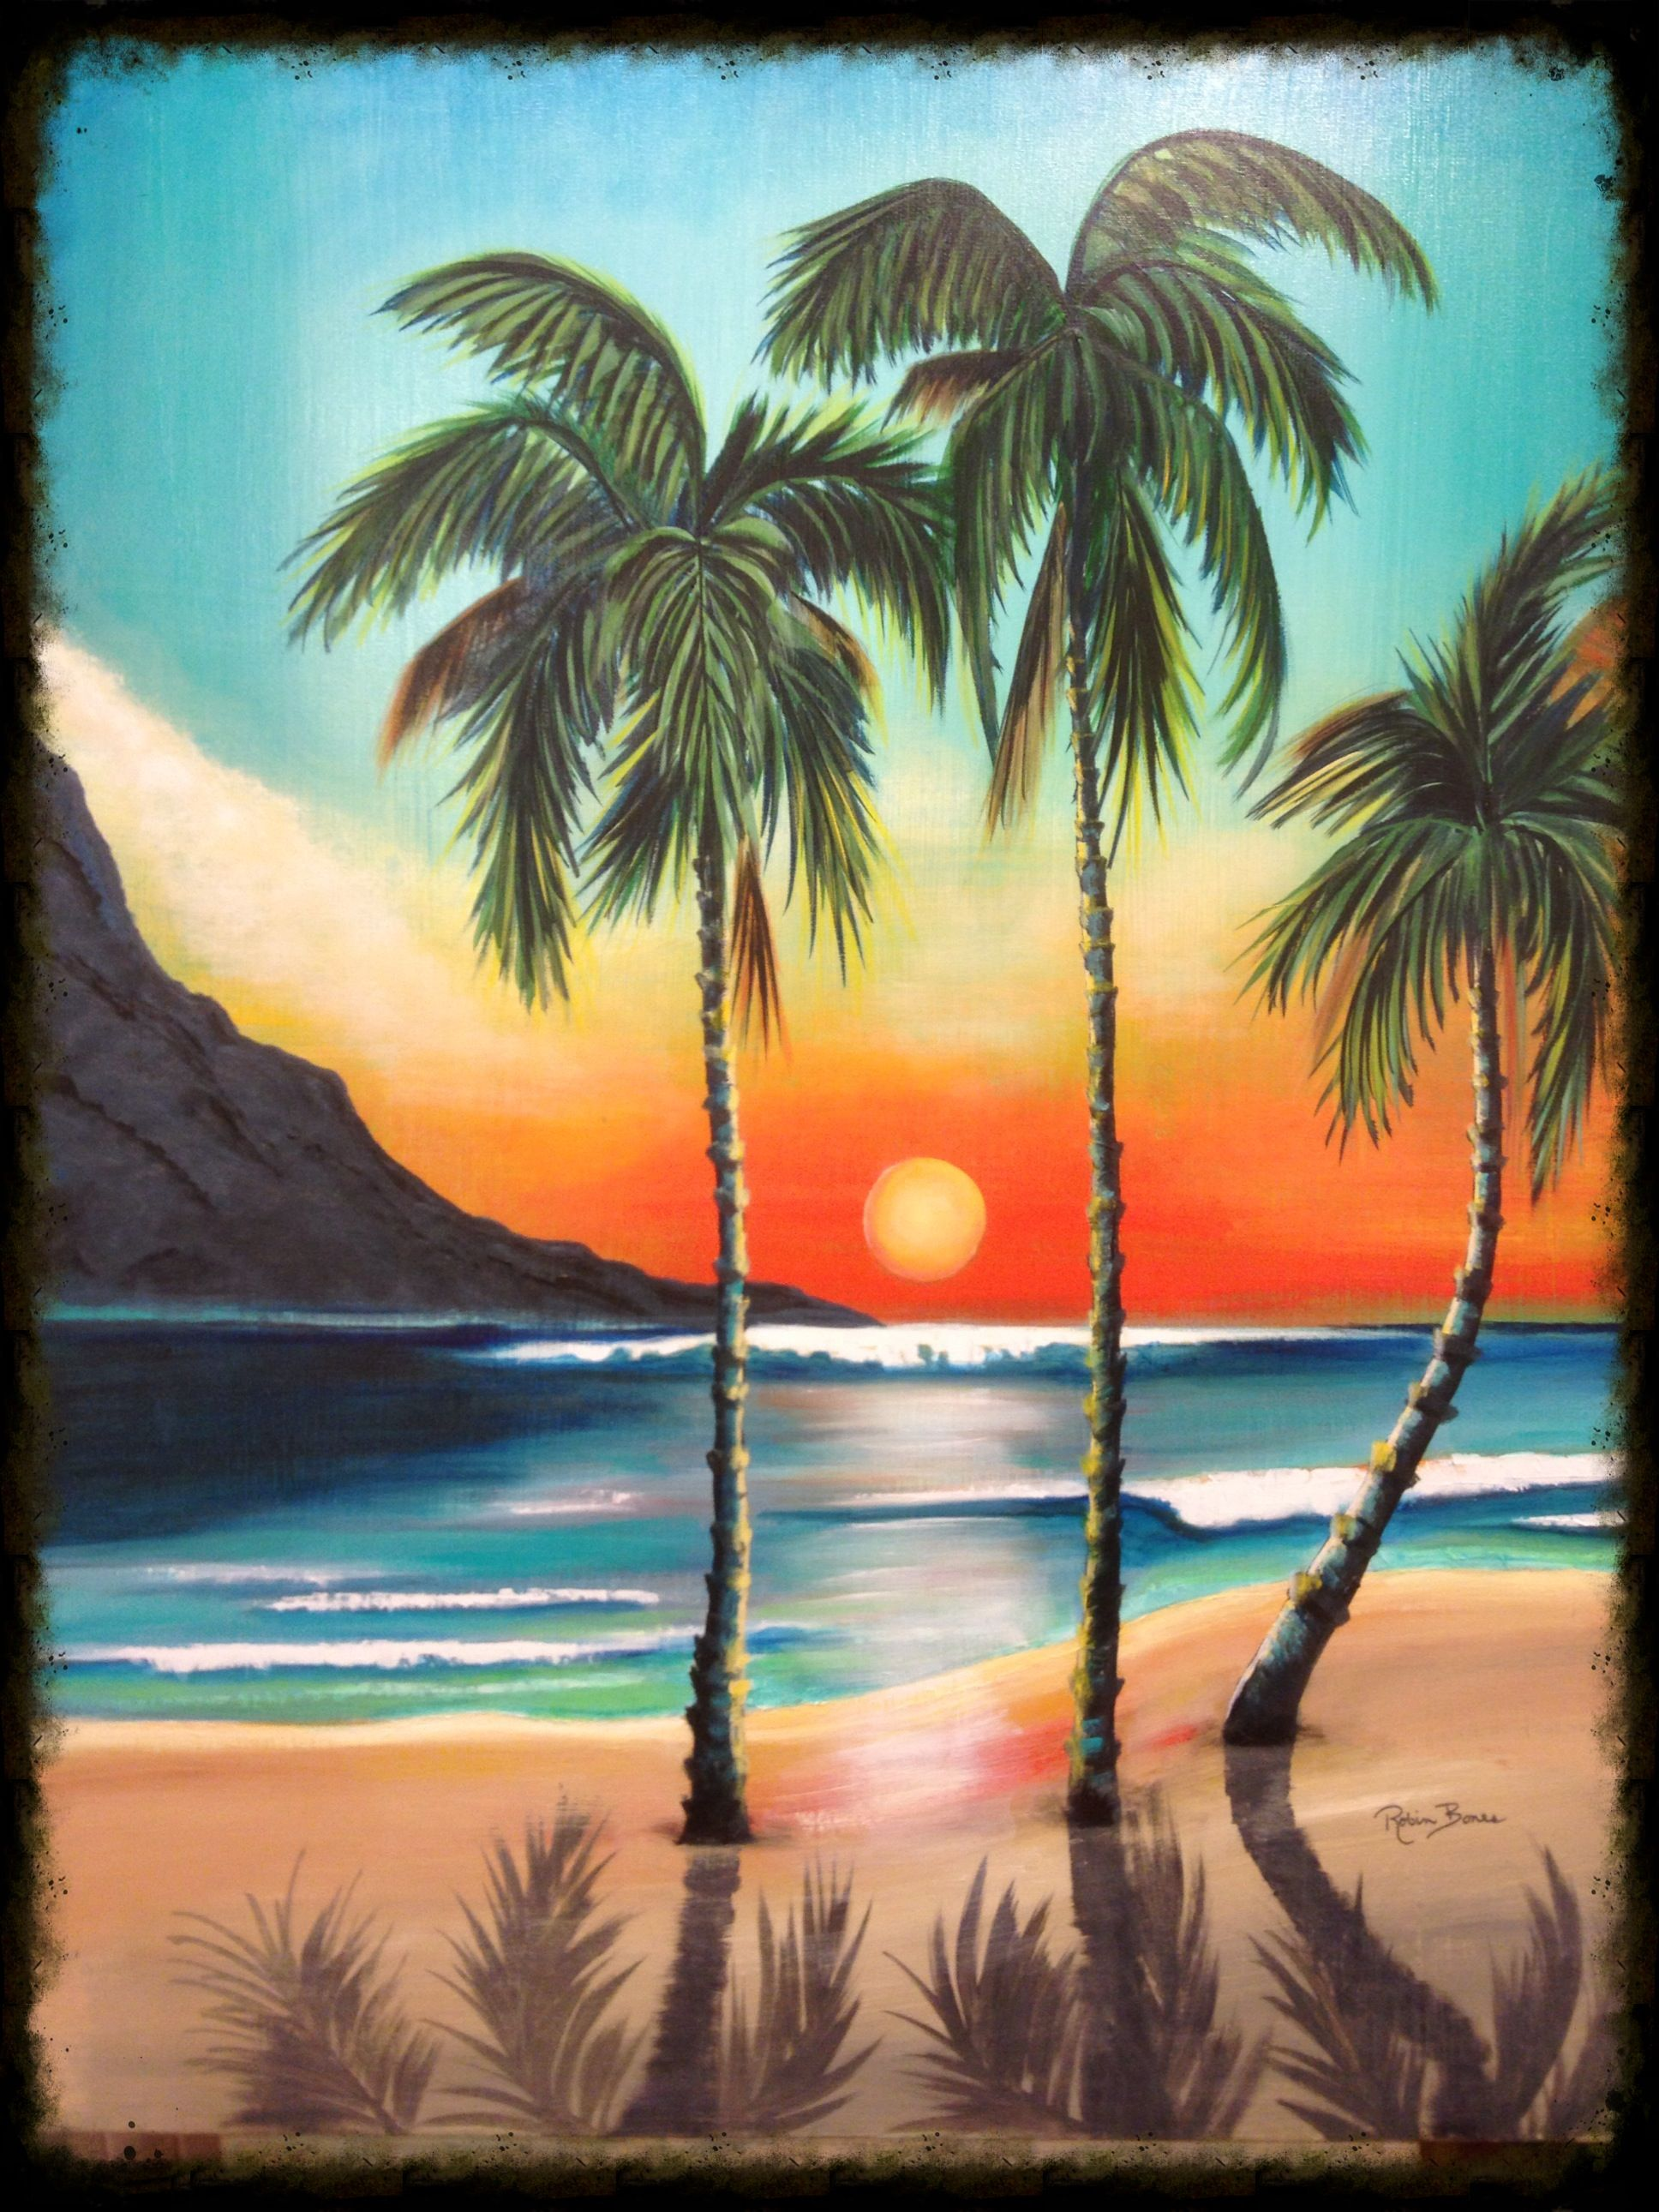 Tropical Artwork Quotpalm Tree Shadows Quot Hawaiian Tropical Art Artwork By